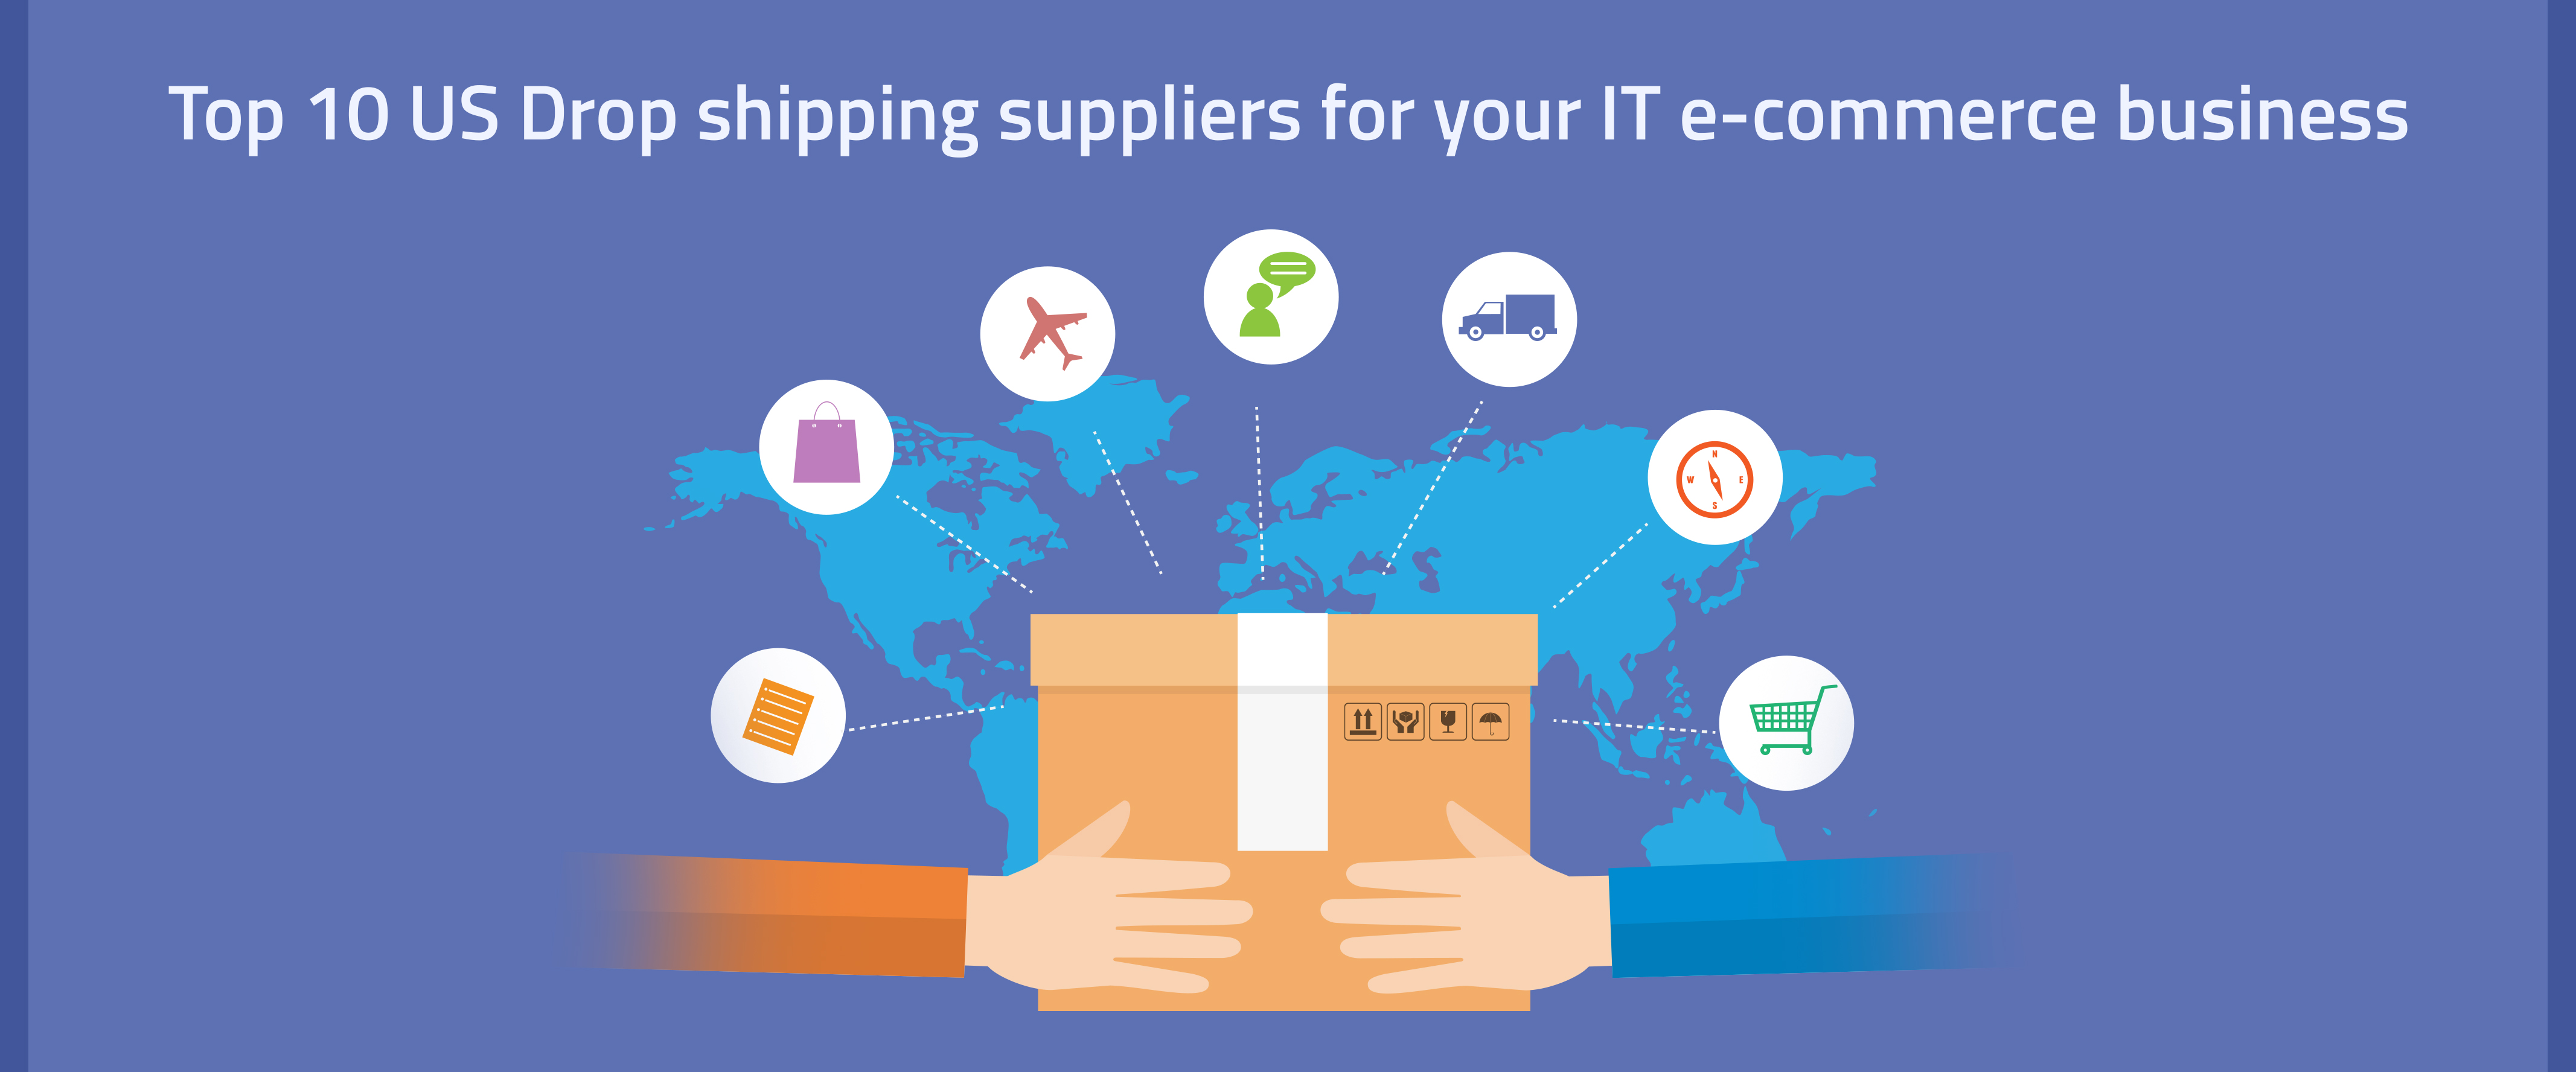 Top 10 US Drop shipping suppliers for your IT e-commerce business